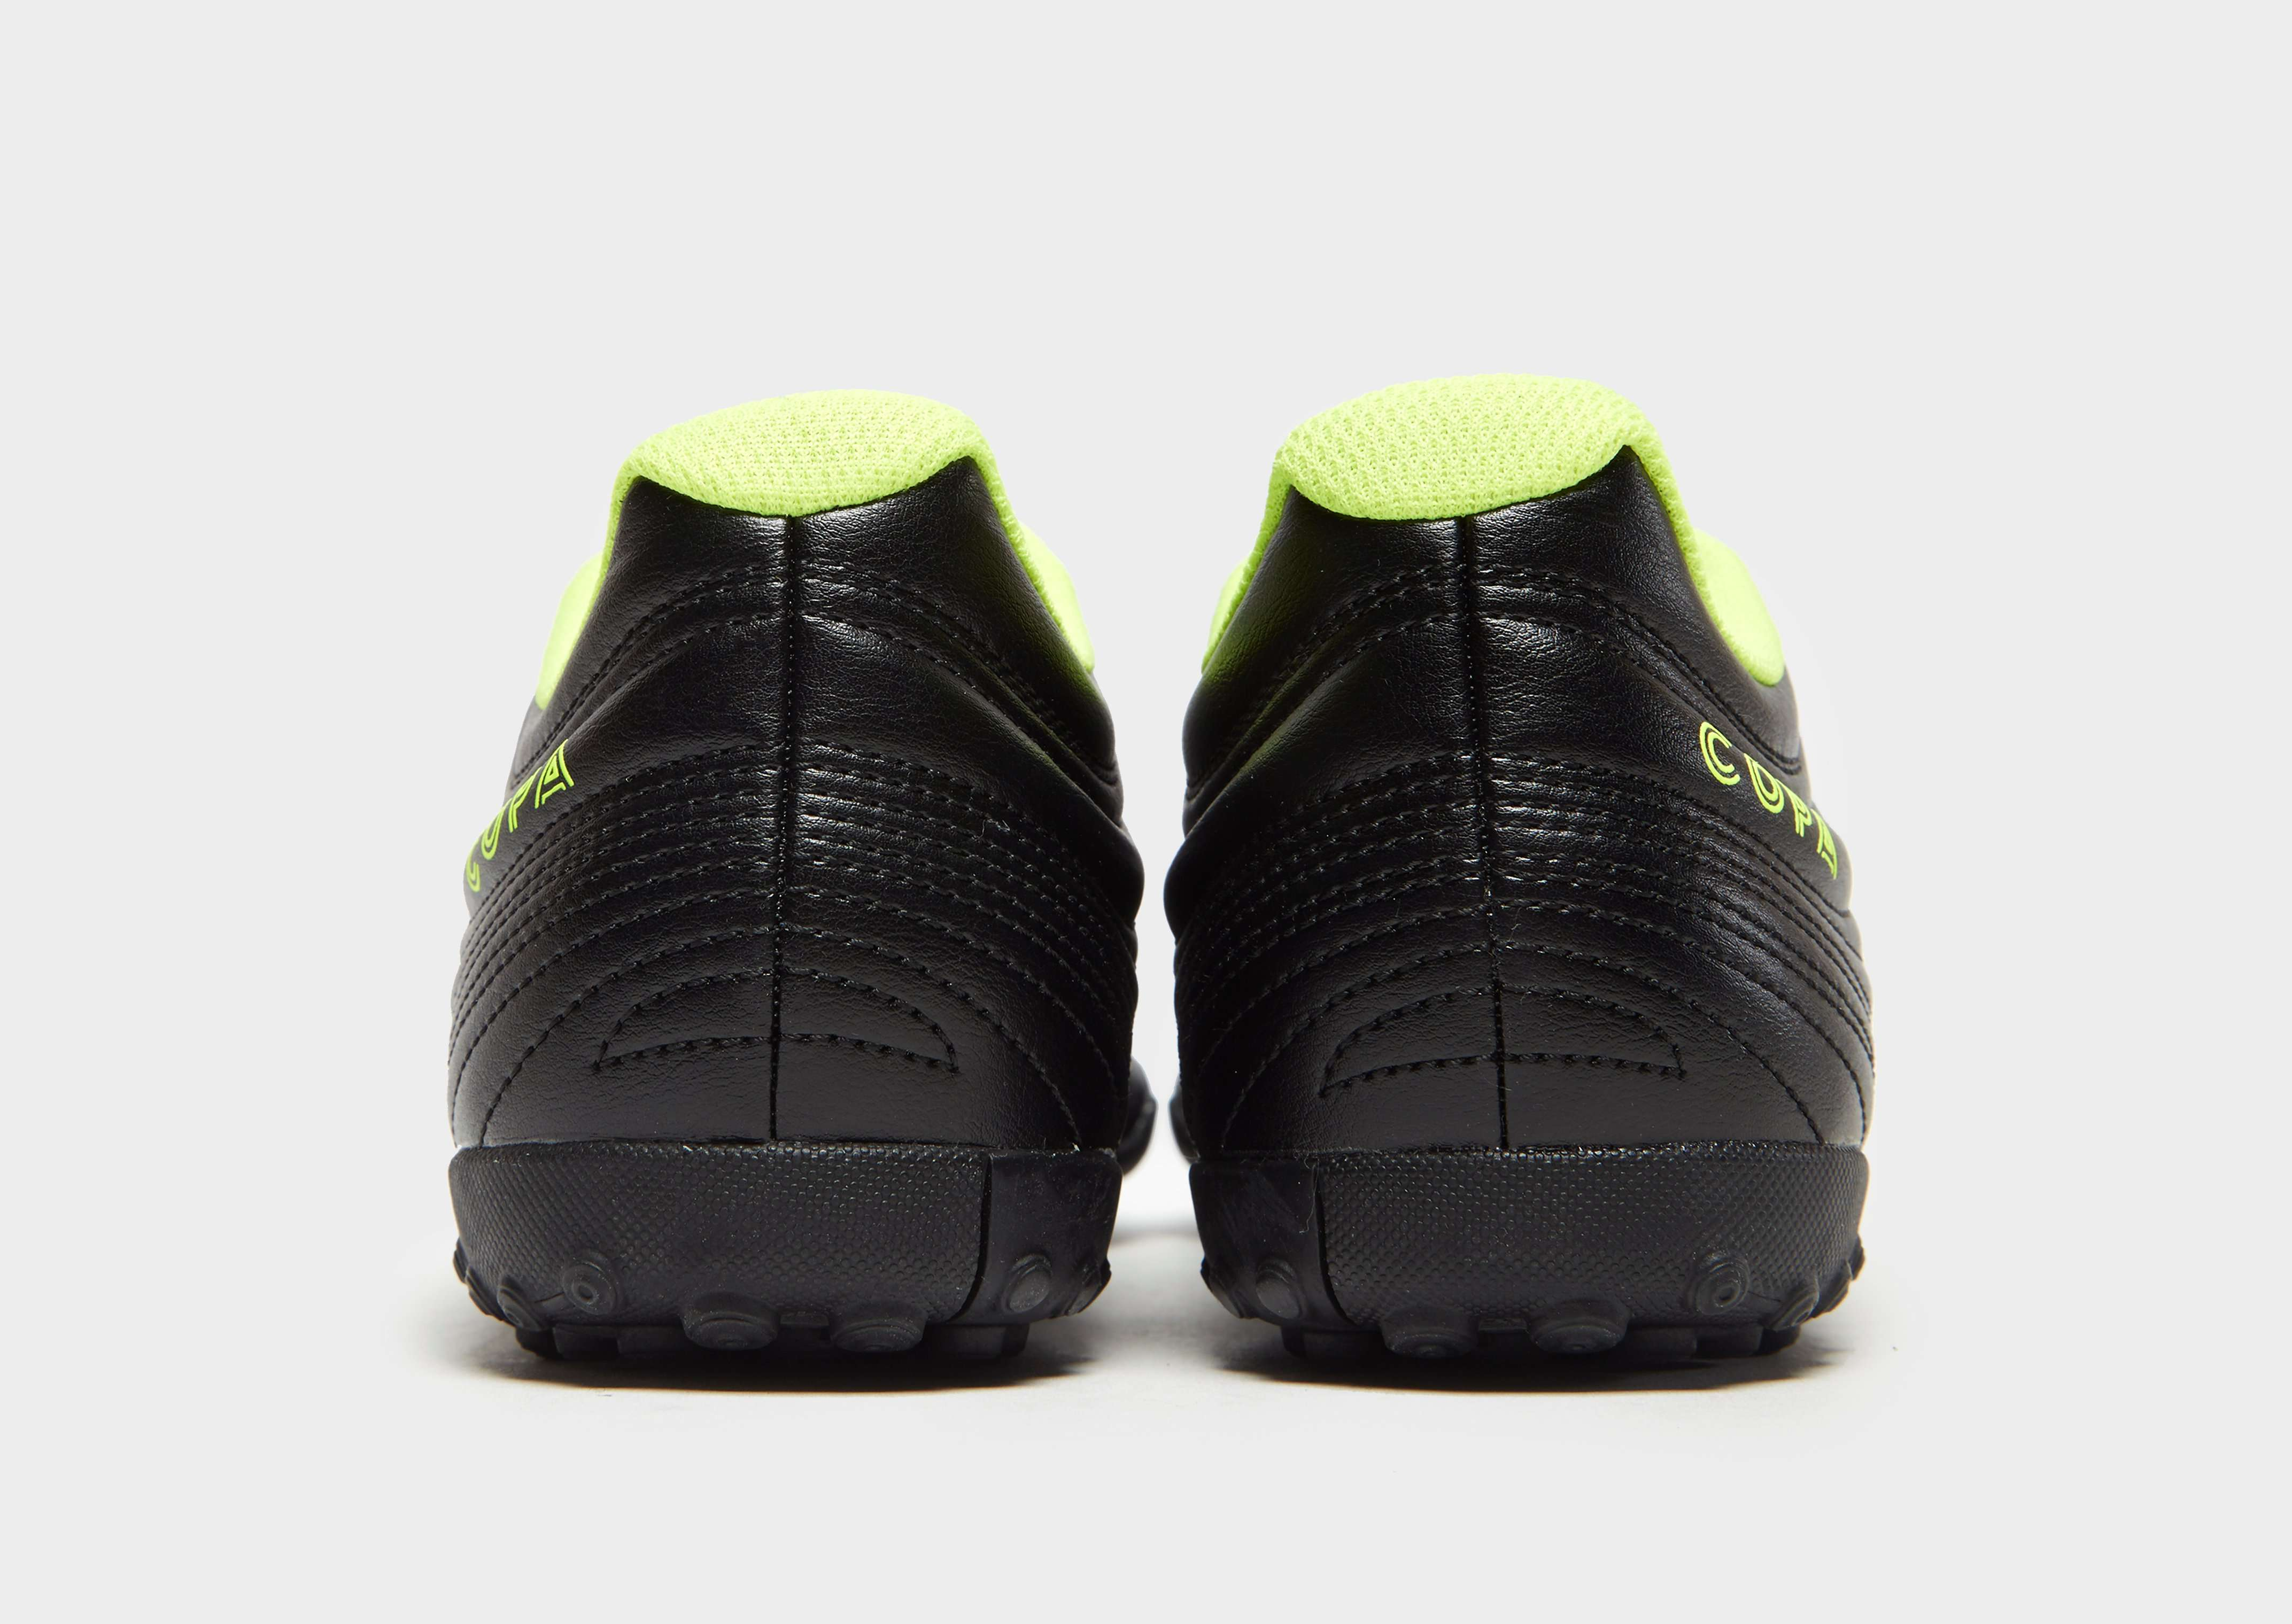 adidas Exhibit Copa 19.4 TF